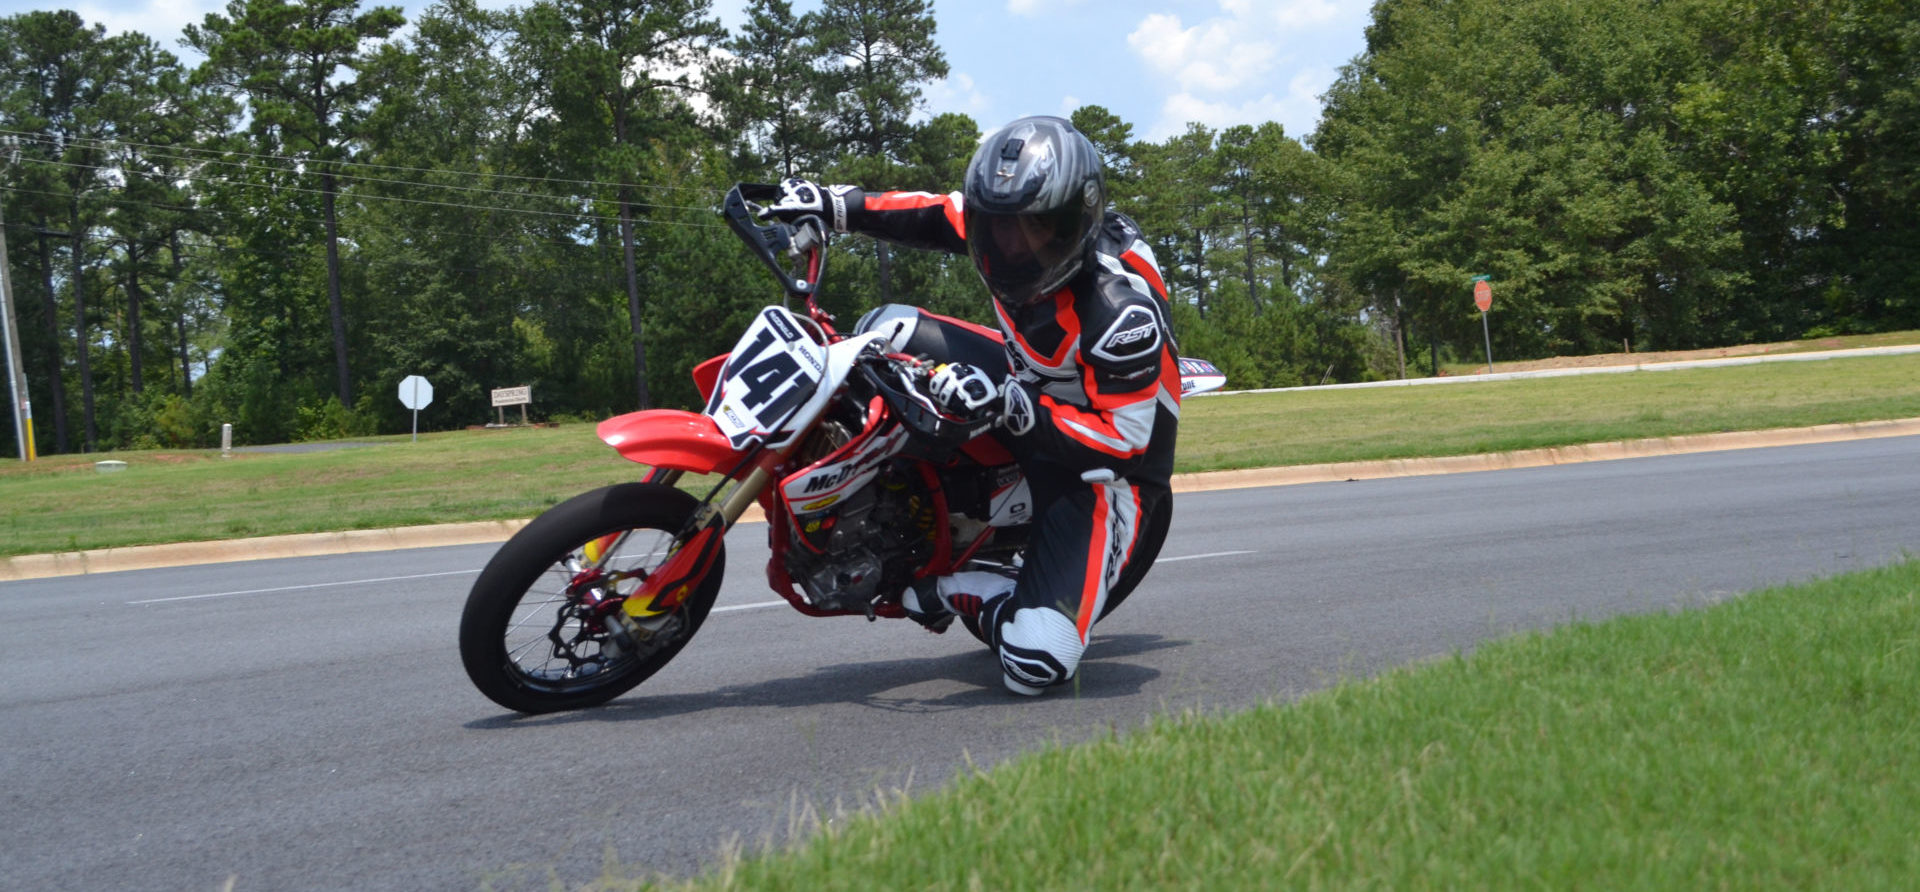 A mini road racer in action. Photo courtesy SEMRA.